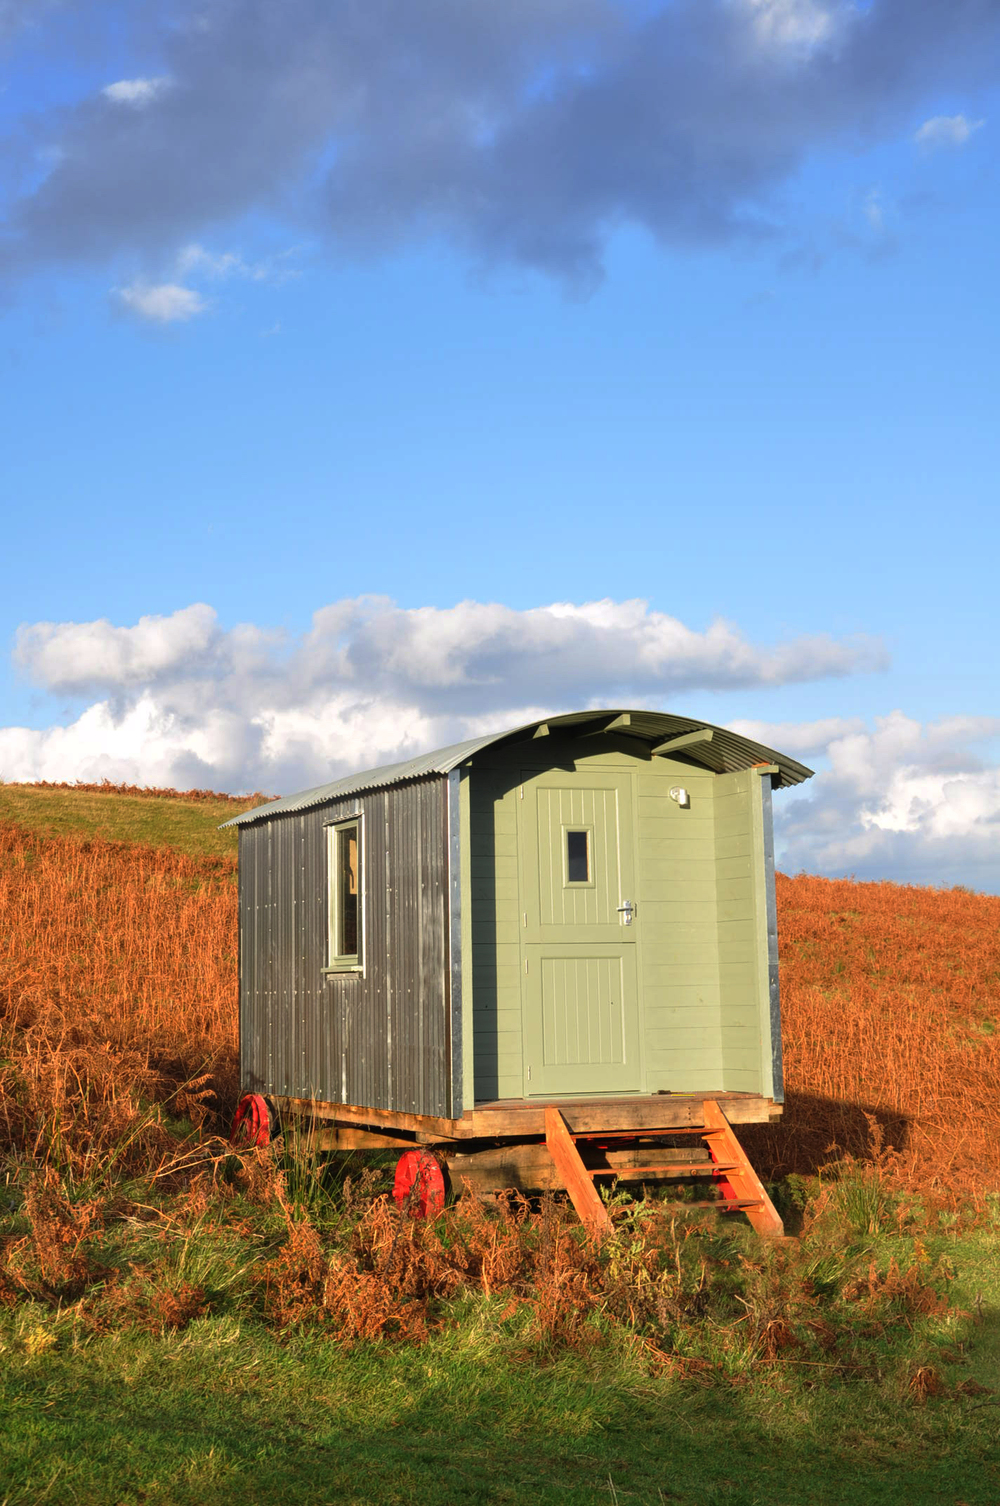 The Eigg Shepherd's Hut